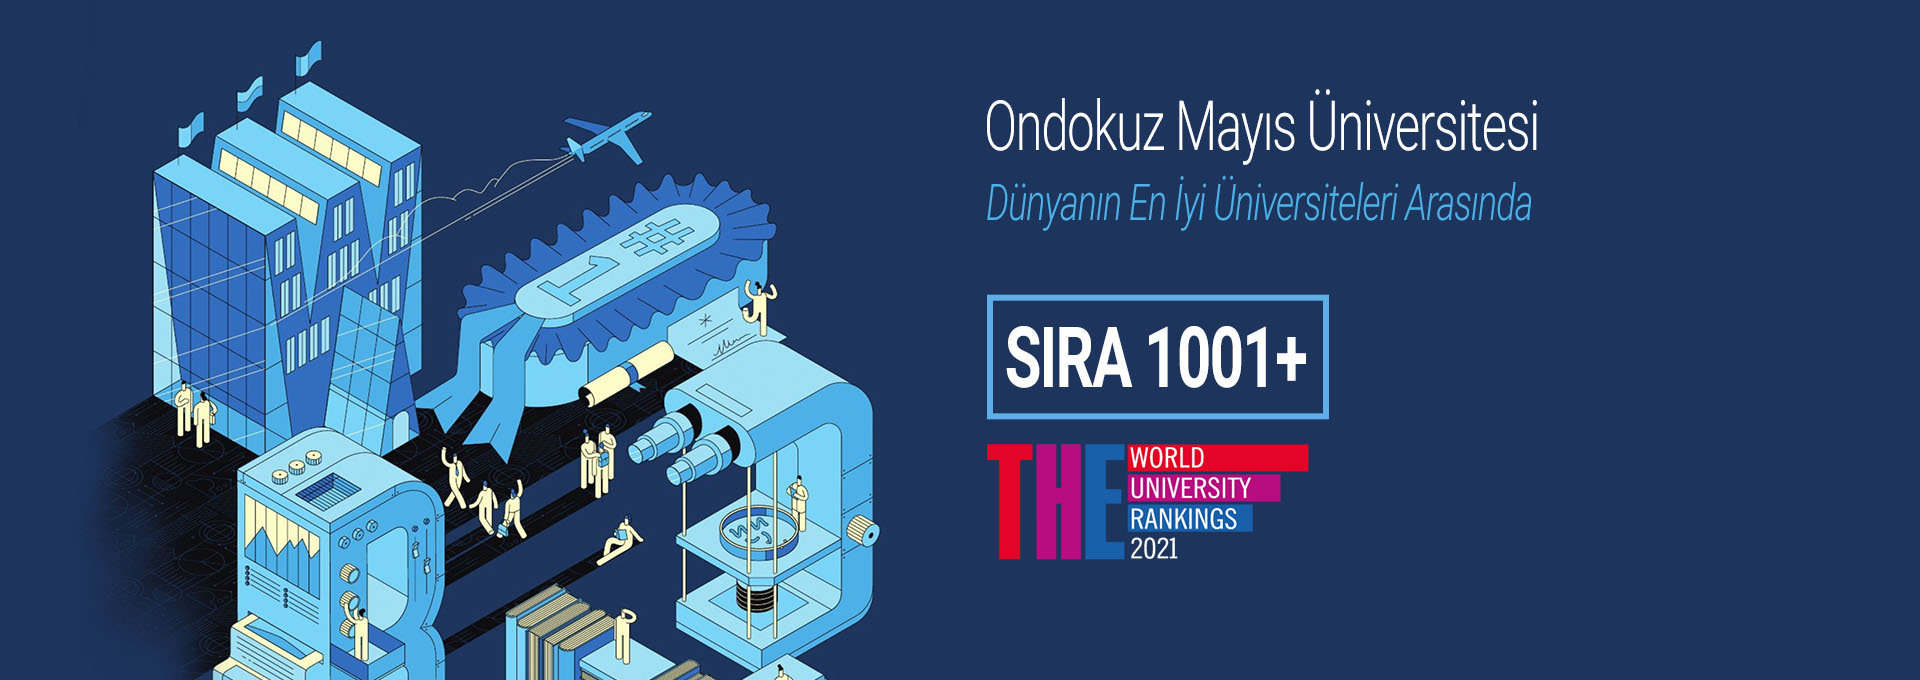 OMU Places Again at the 1001+ Group at Times Higher Education World University Rankings